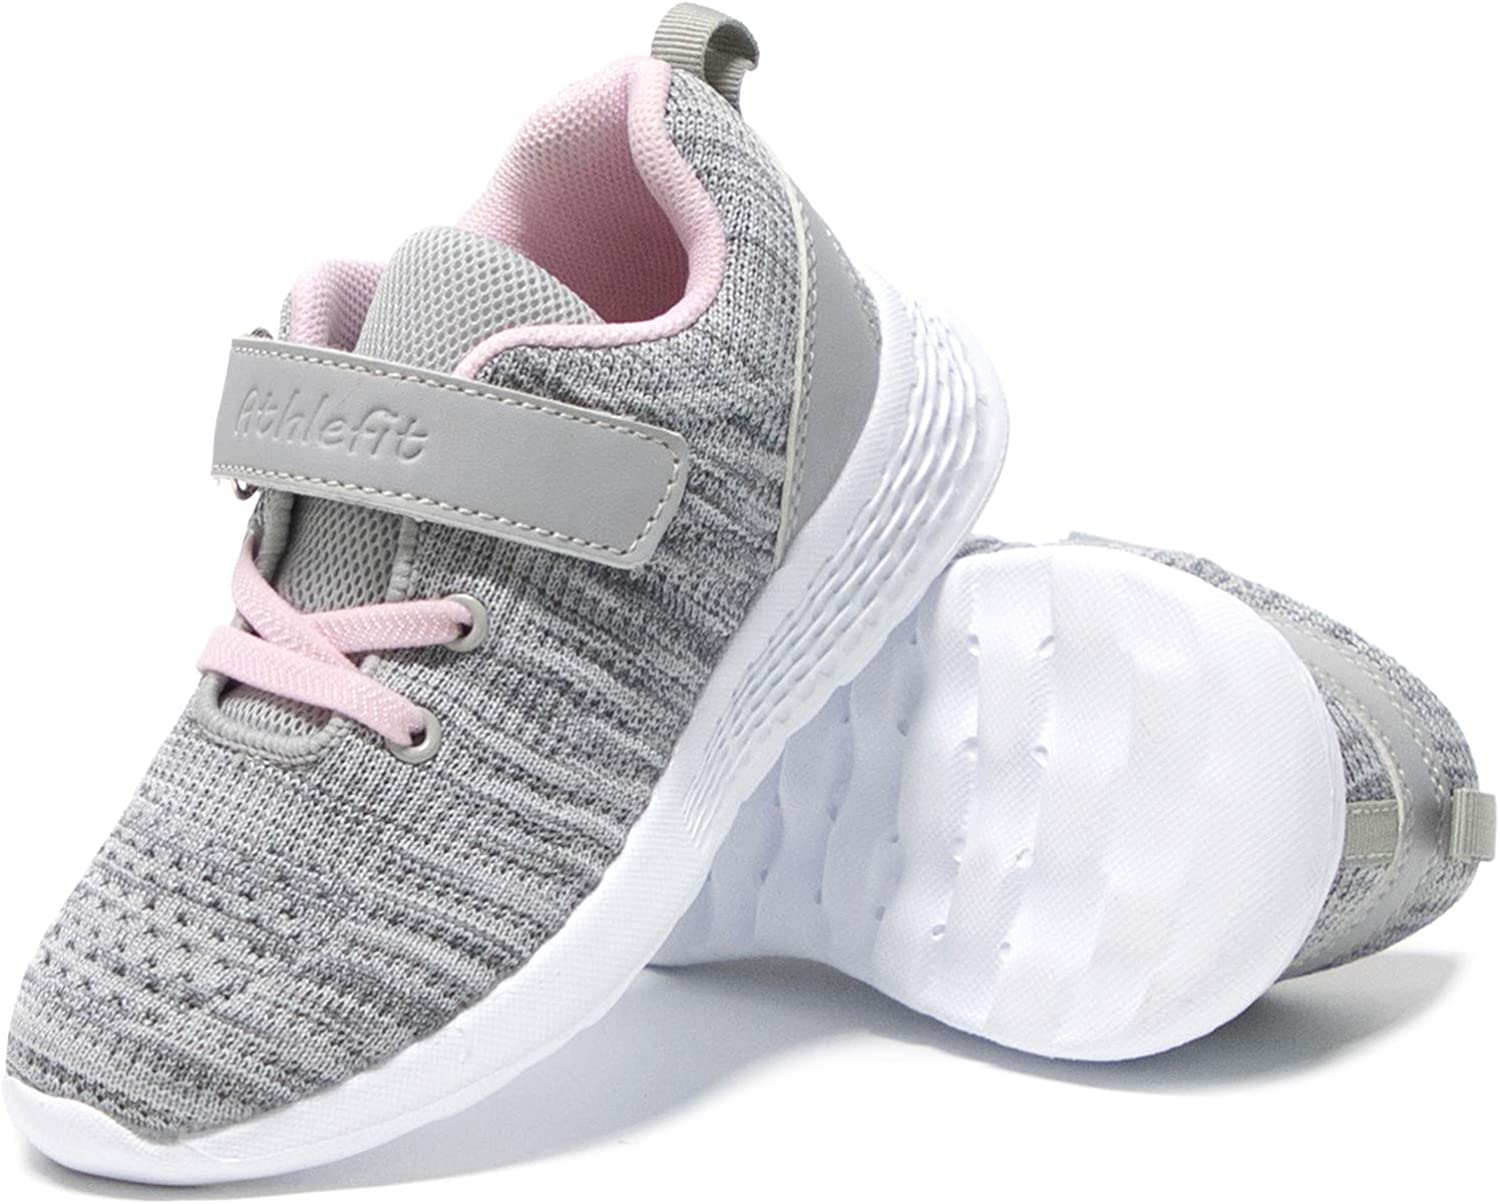 Athlefit 4 years warranty Toddler Little Girls Boys Shoes Sneakers Kid Lightweigh Popularity